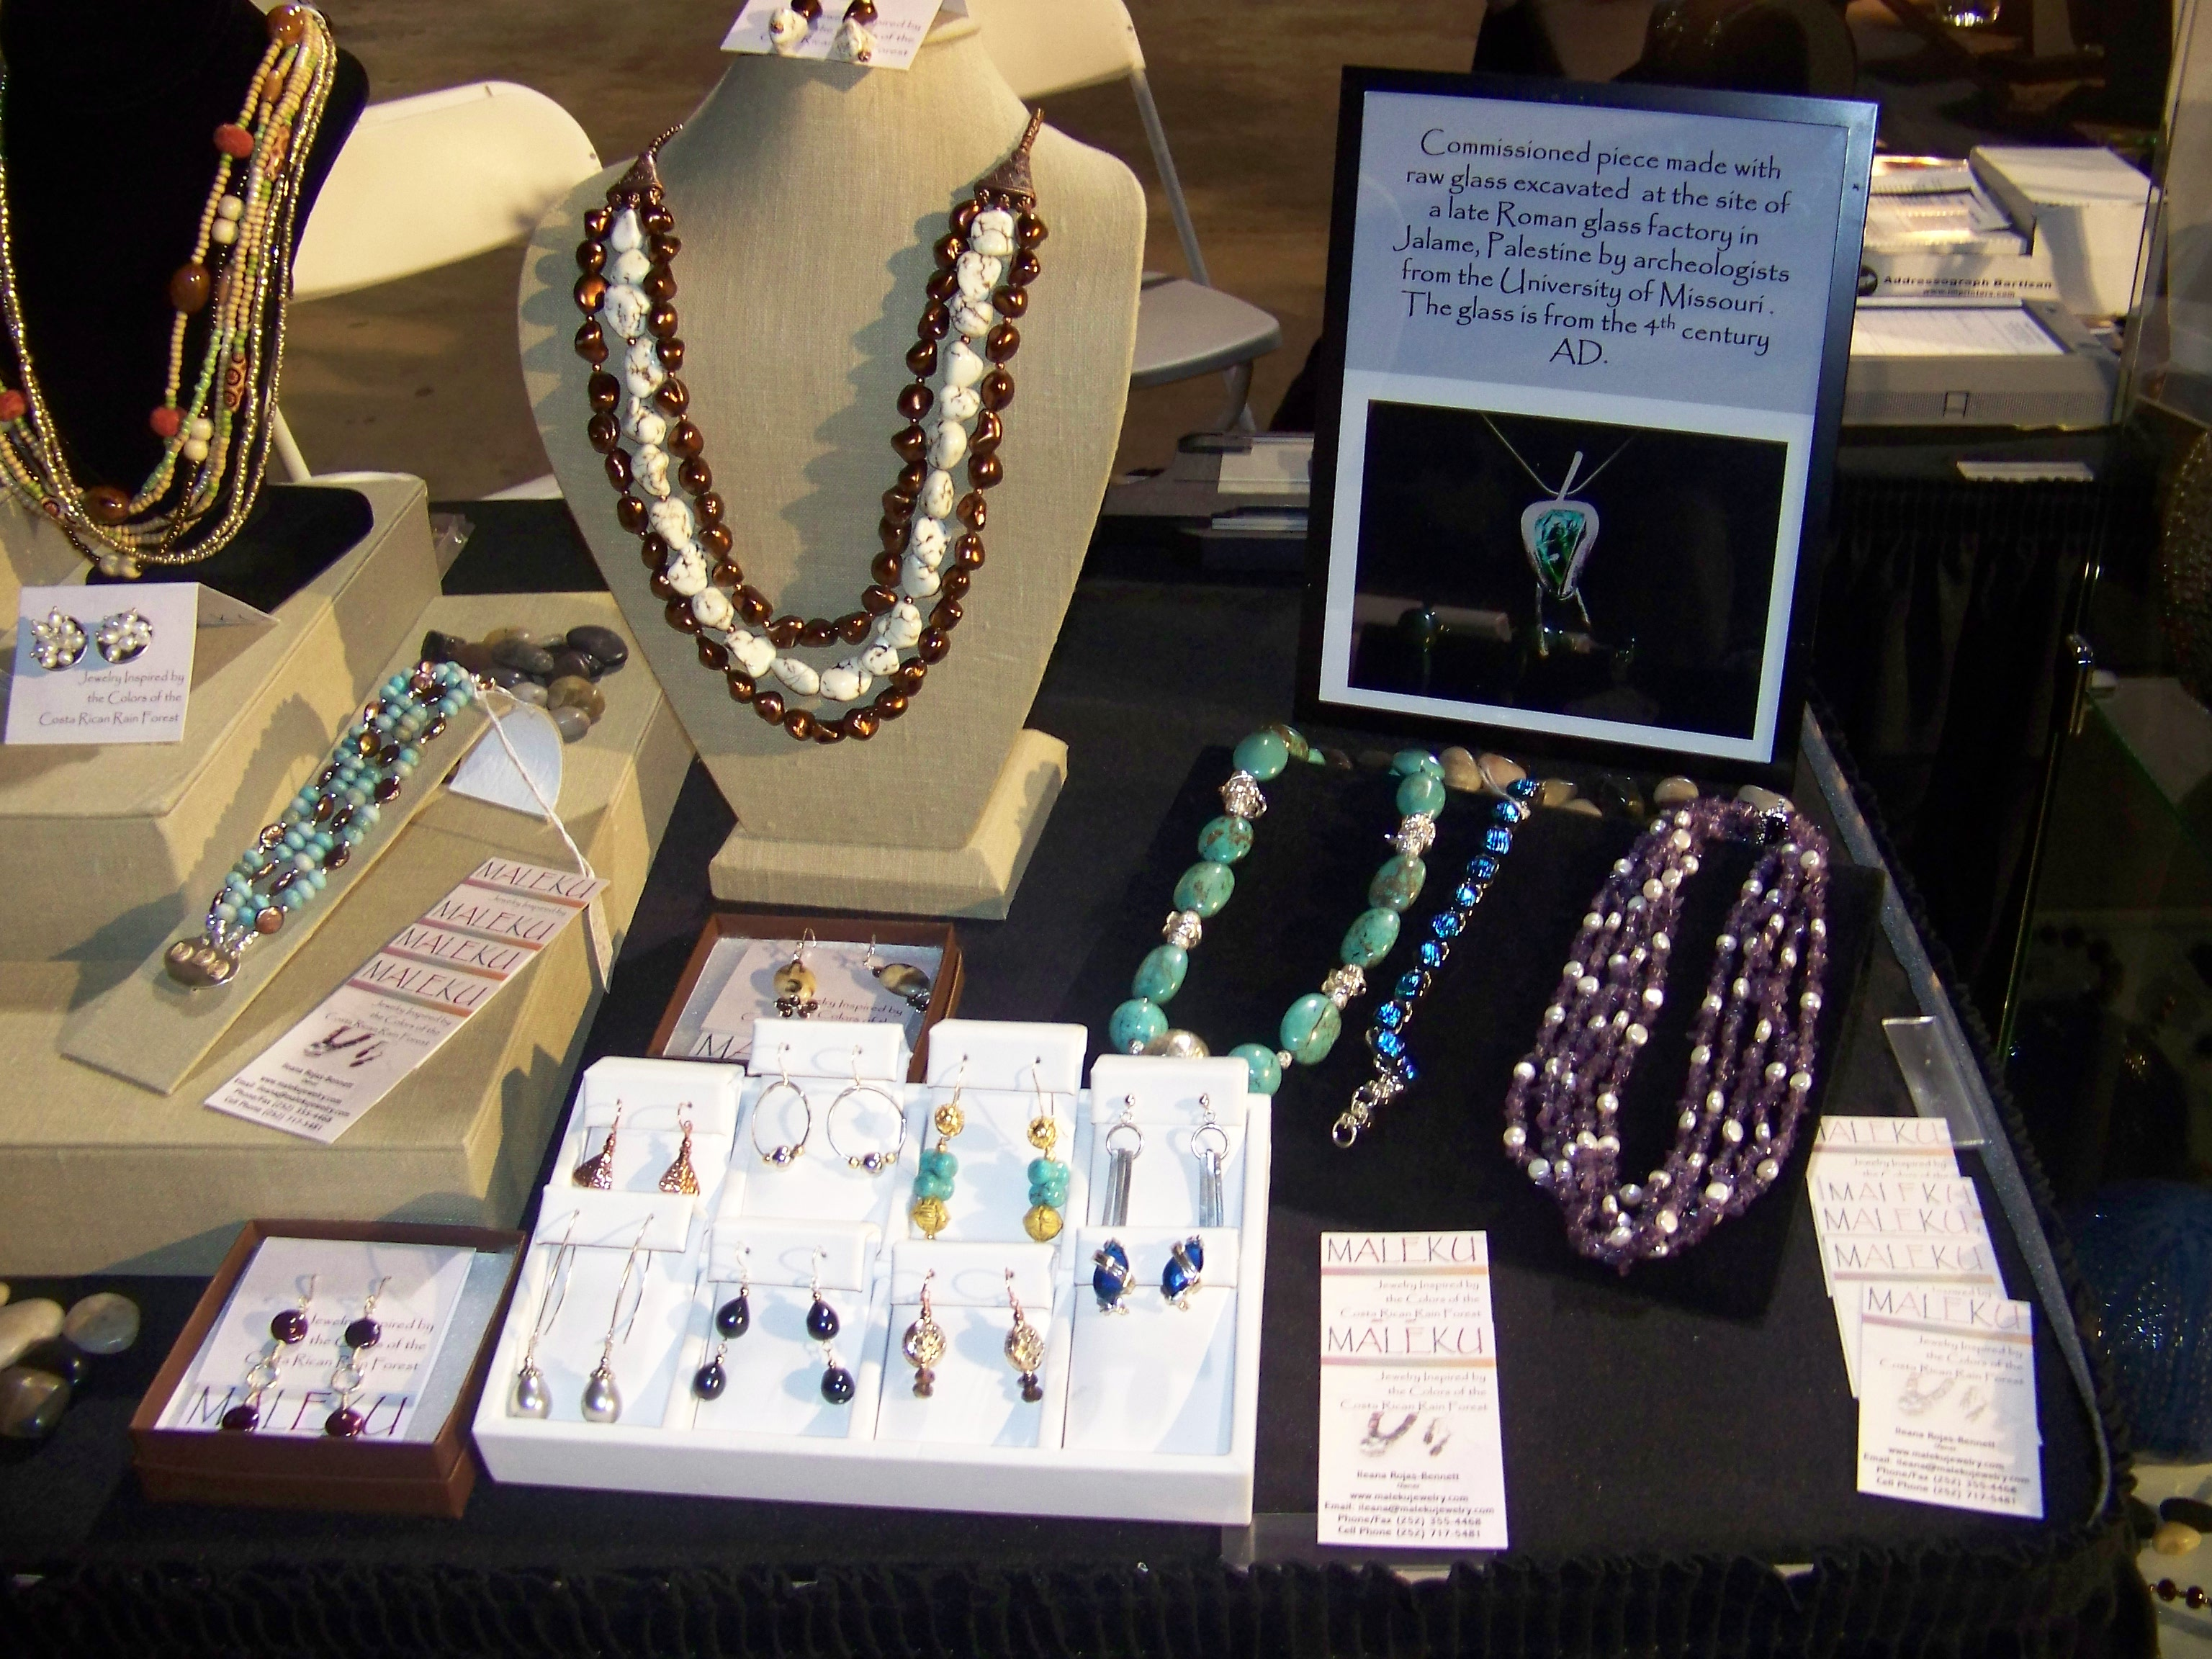 Maleku Jewelry at Miami Fashion Week